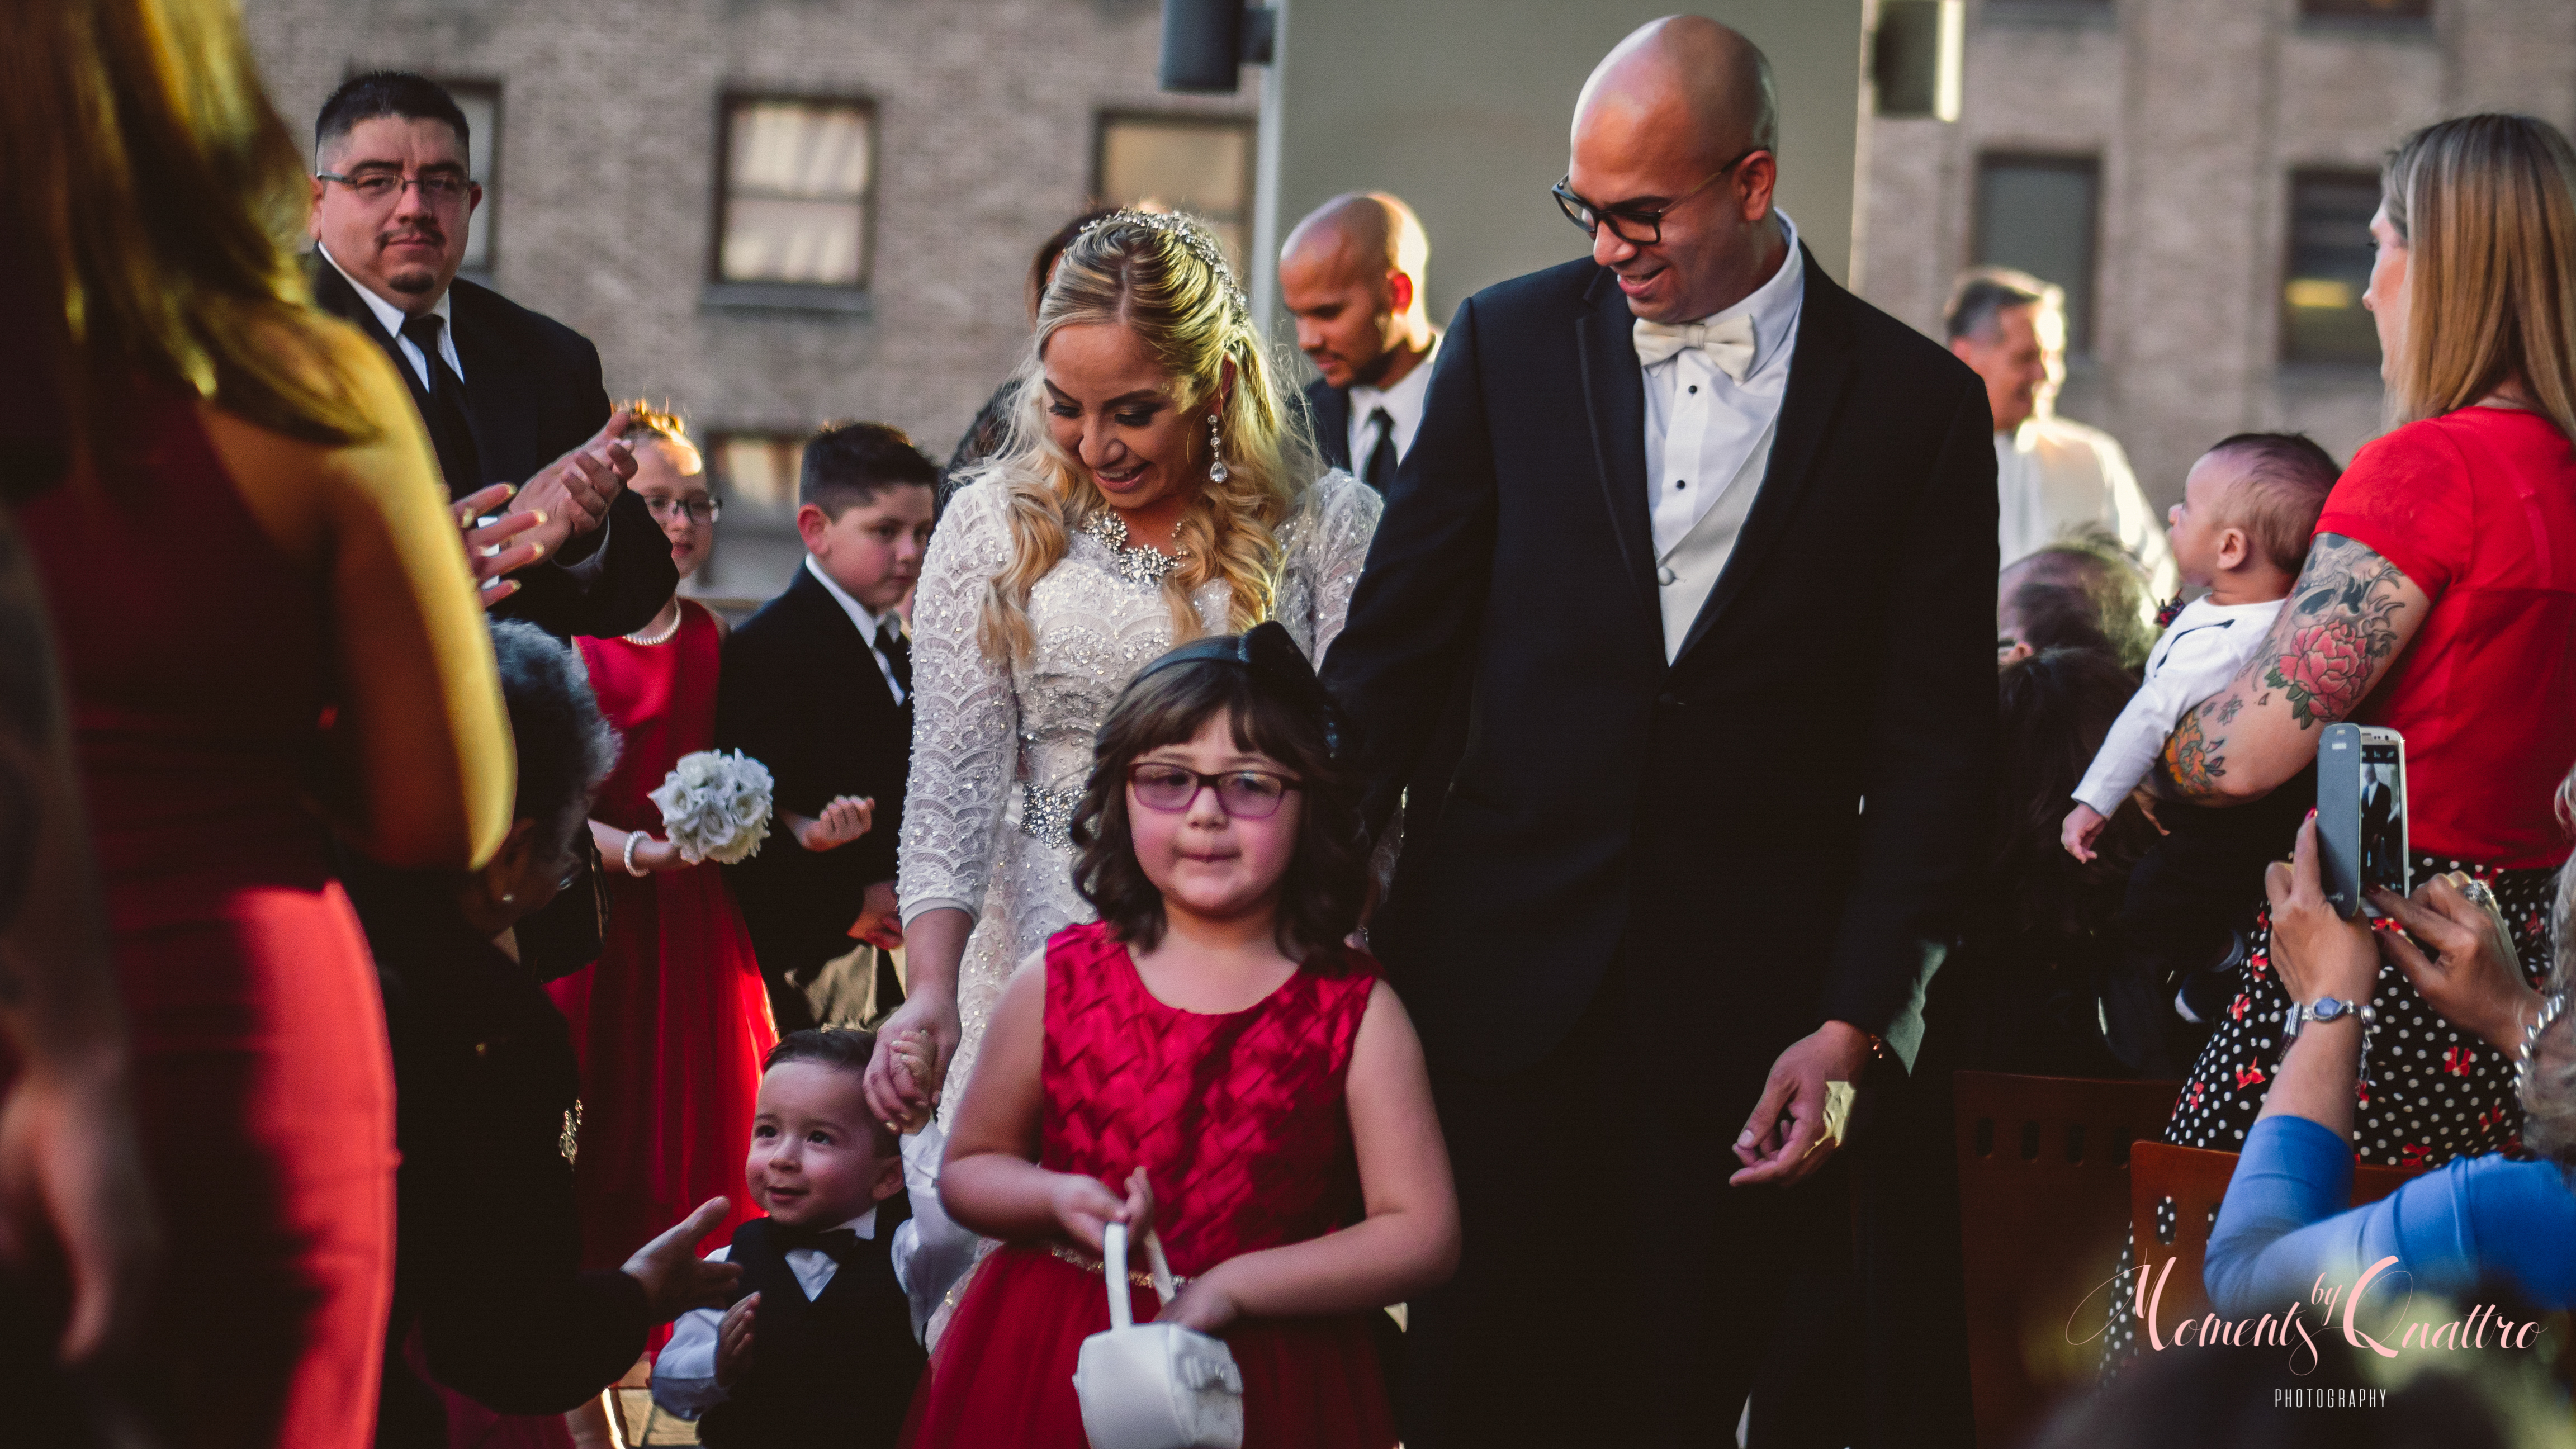 Wedding photography in Texas